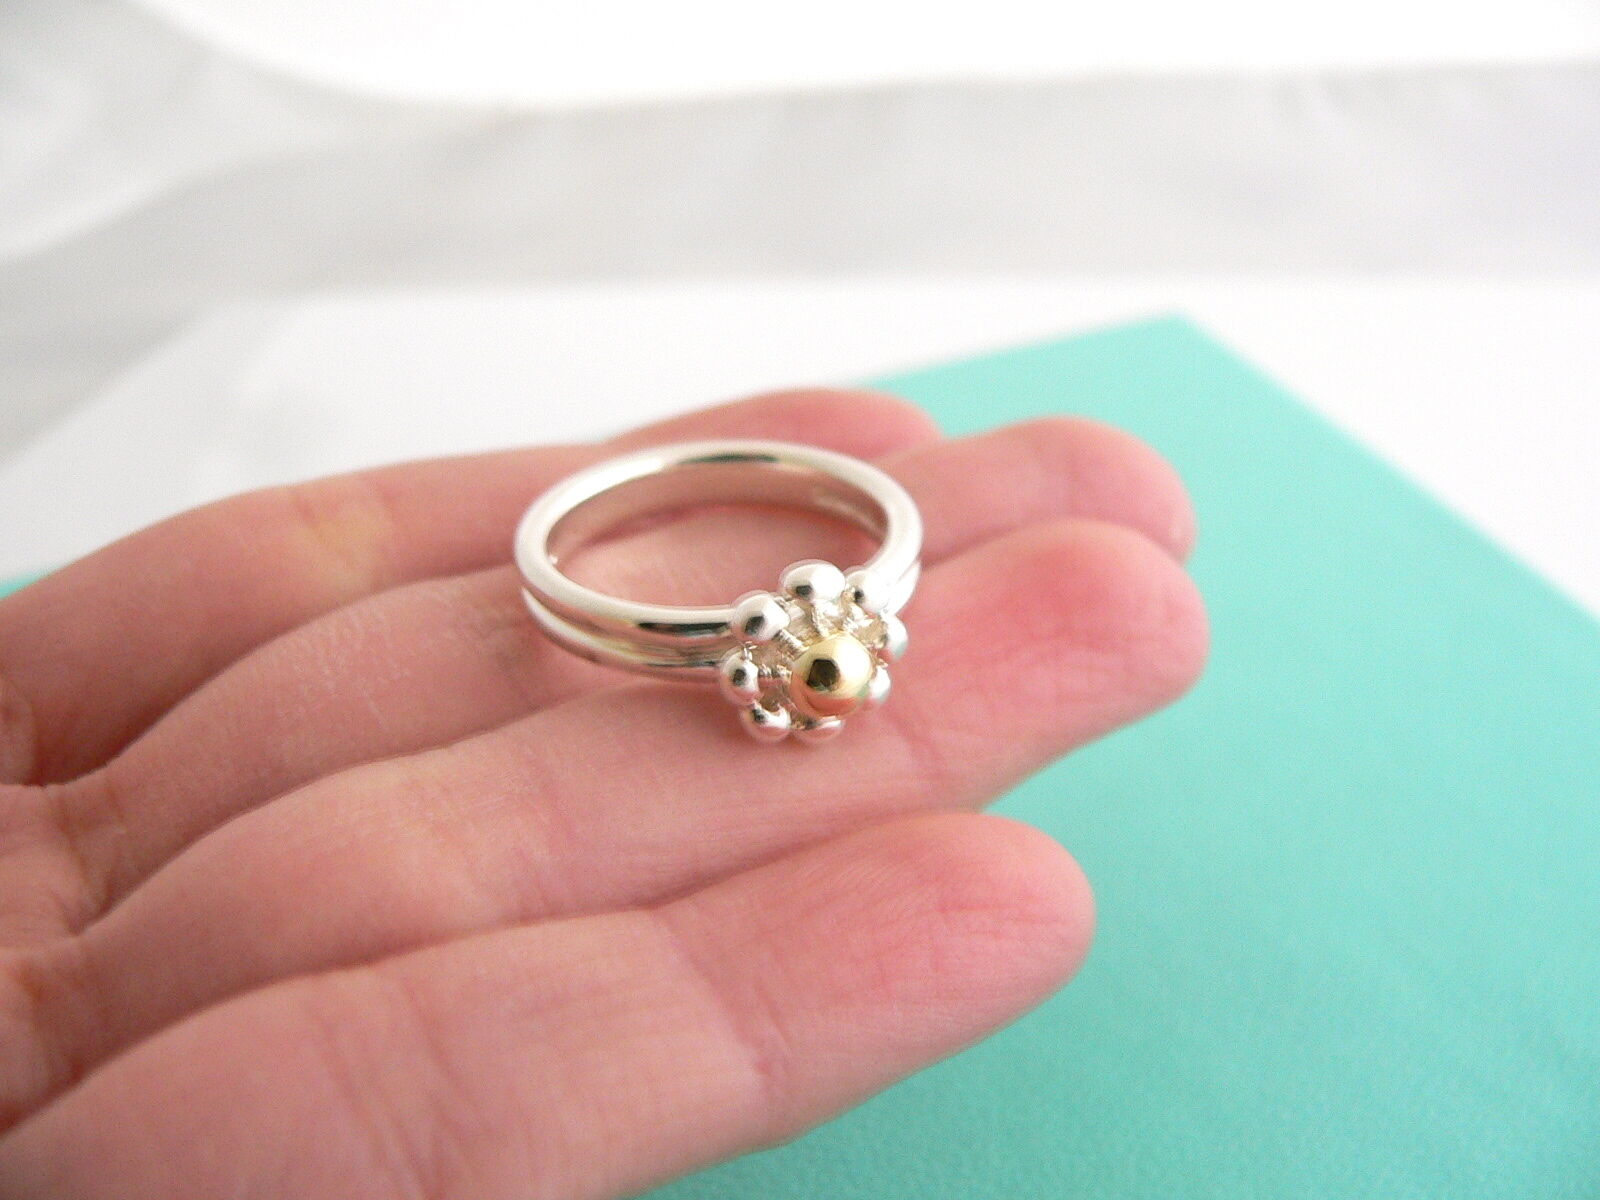 Tiffany & Co Silver 18K Gold Picasso Jolie Flower Bead RIng Band Sz 6 Gift Love